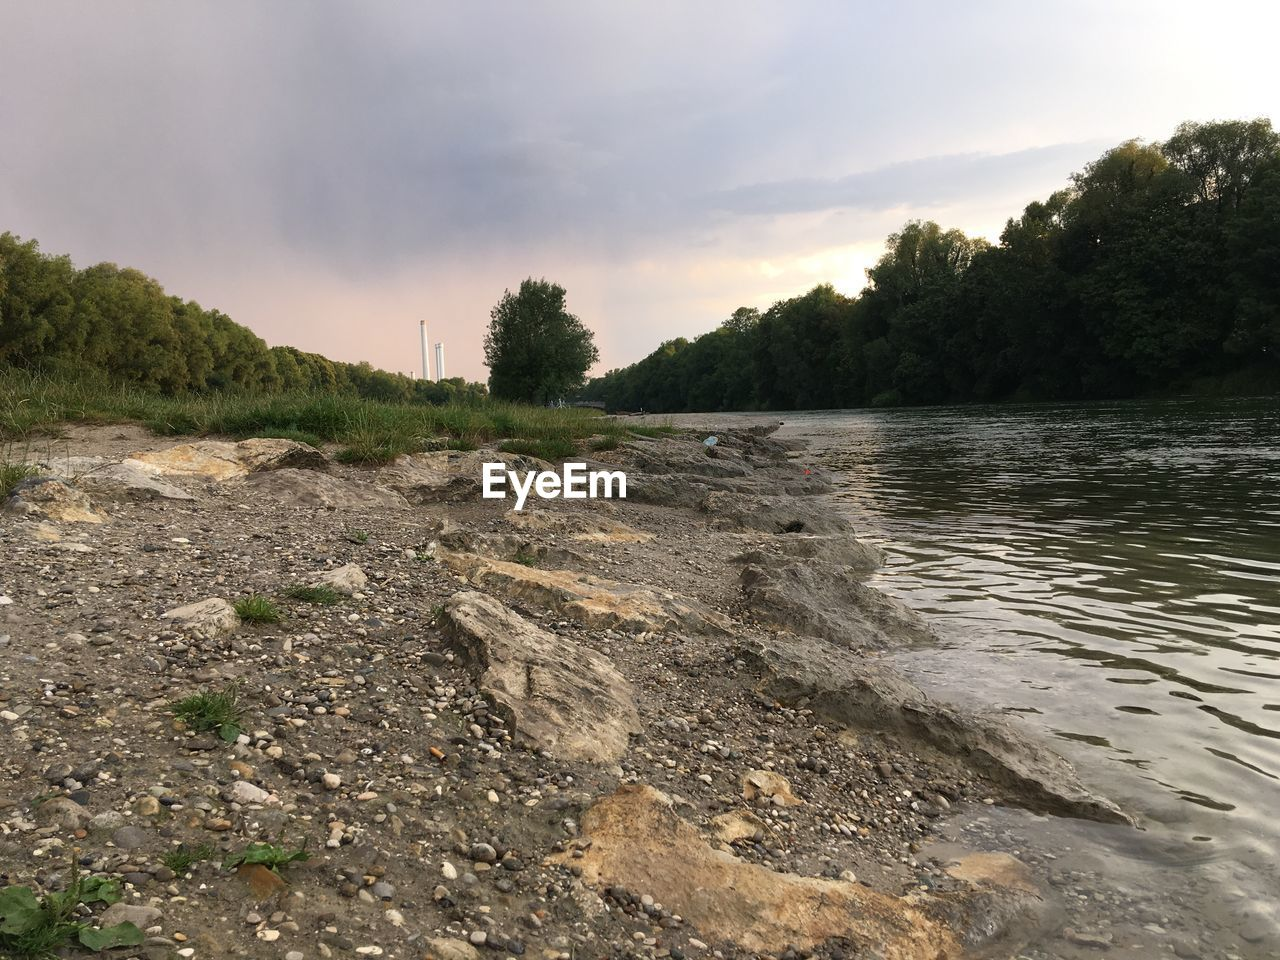 sky, water, plant, tree, cloud - sky, beauty in nature, nature, tranquility, scenics - nature, tranquil scene, no people, non-urban scene, land, sunset, outdoors, river, day, remote, environment, flowing water